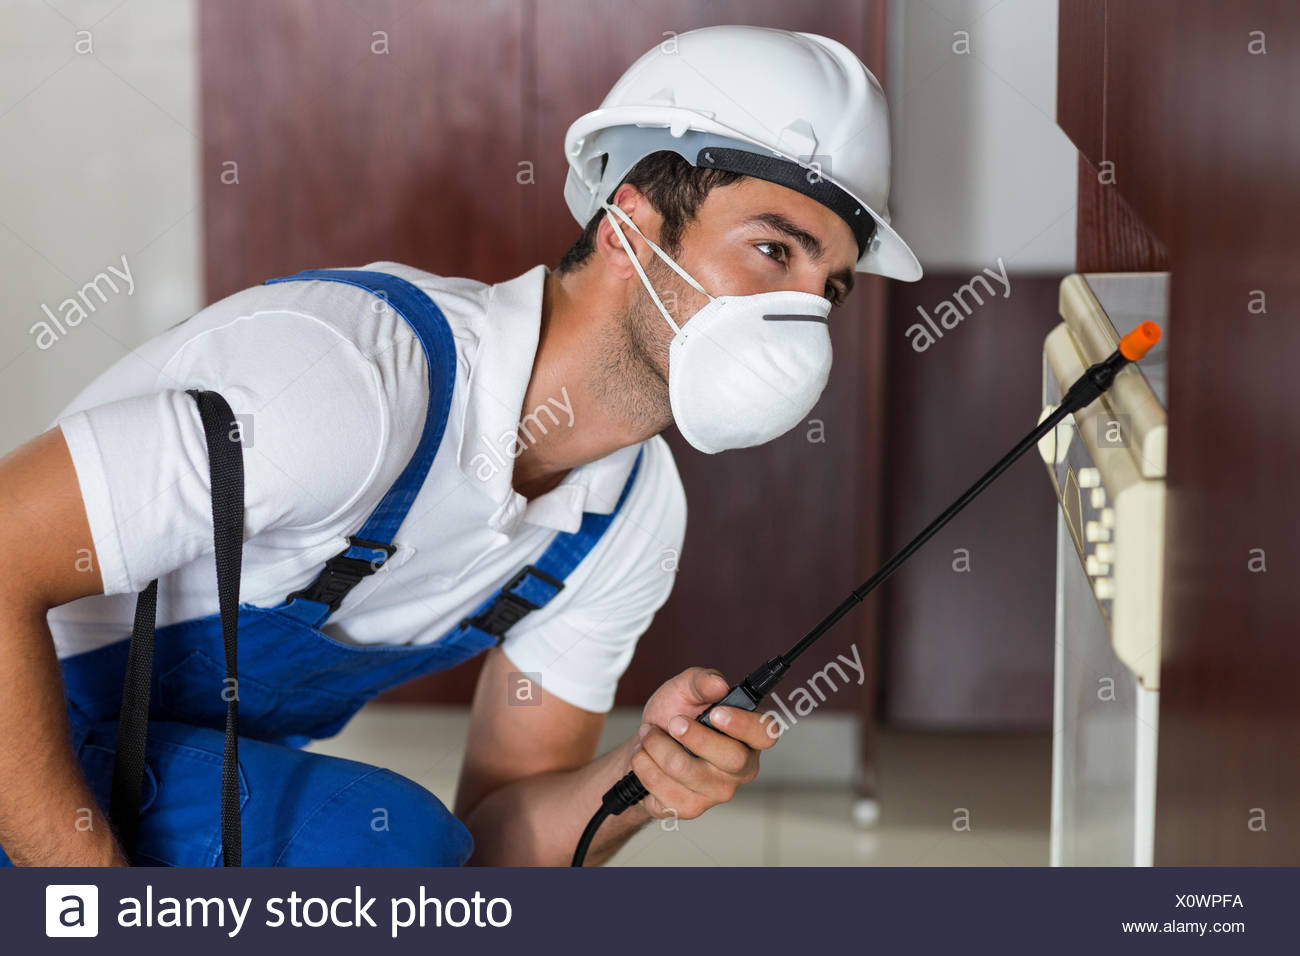 Pest worker using sprayer on cabinets in kitchen Stock Photo